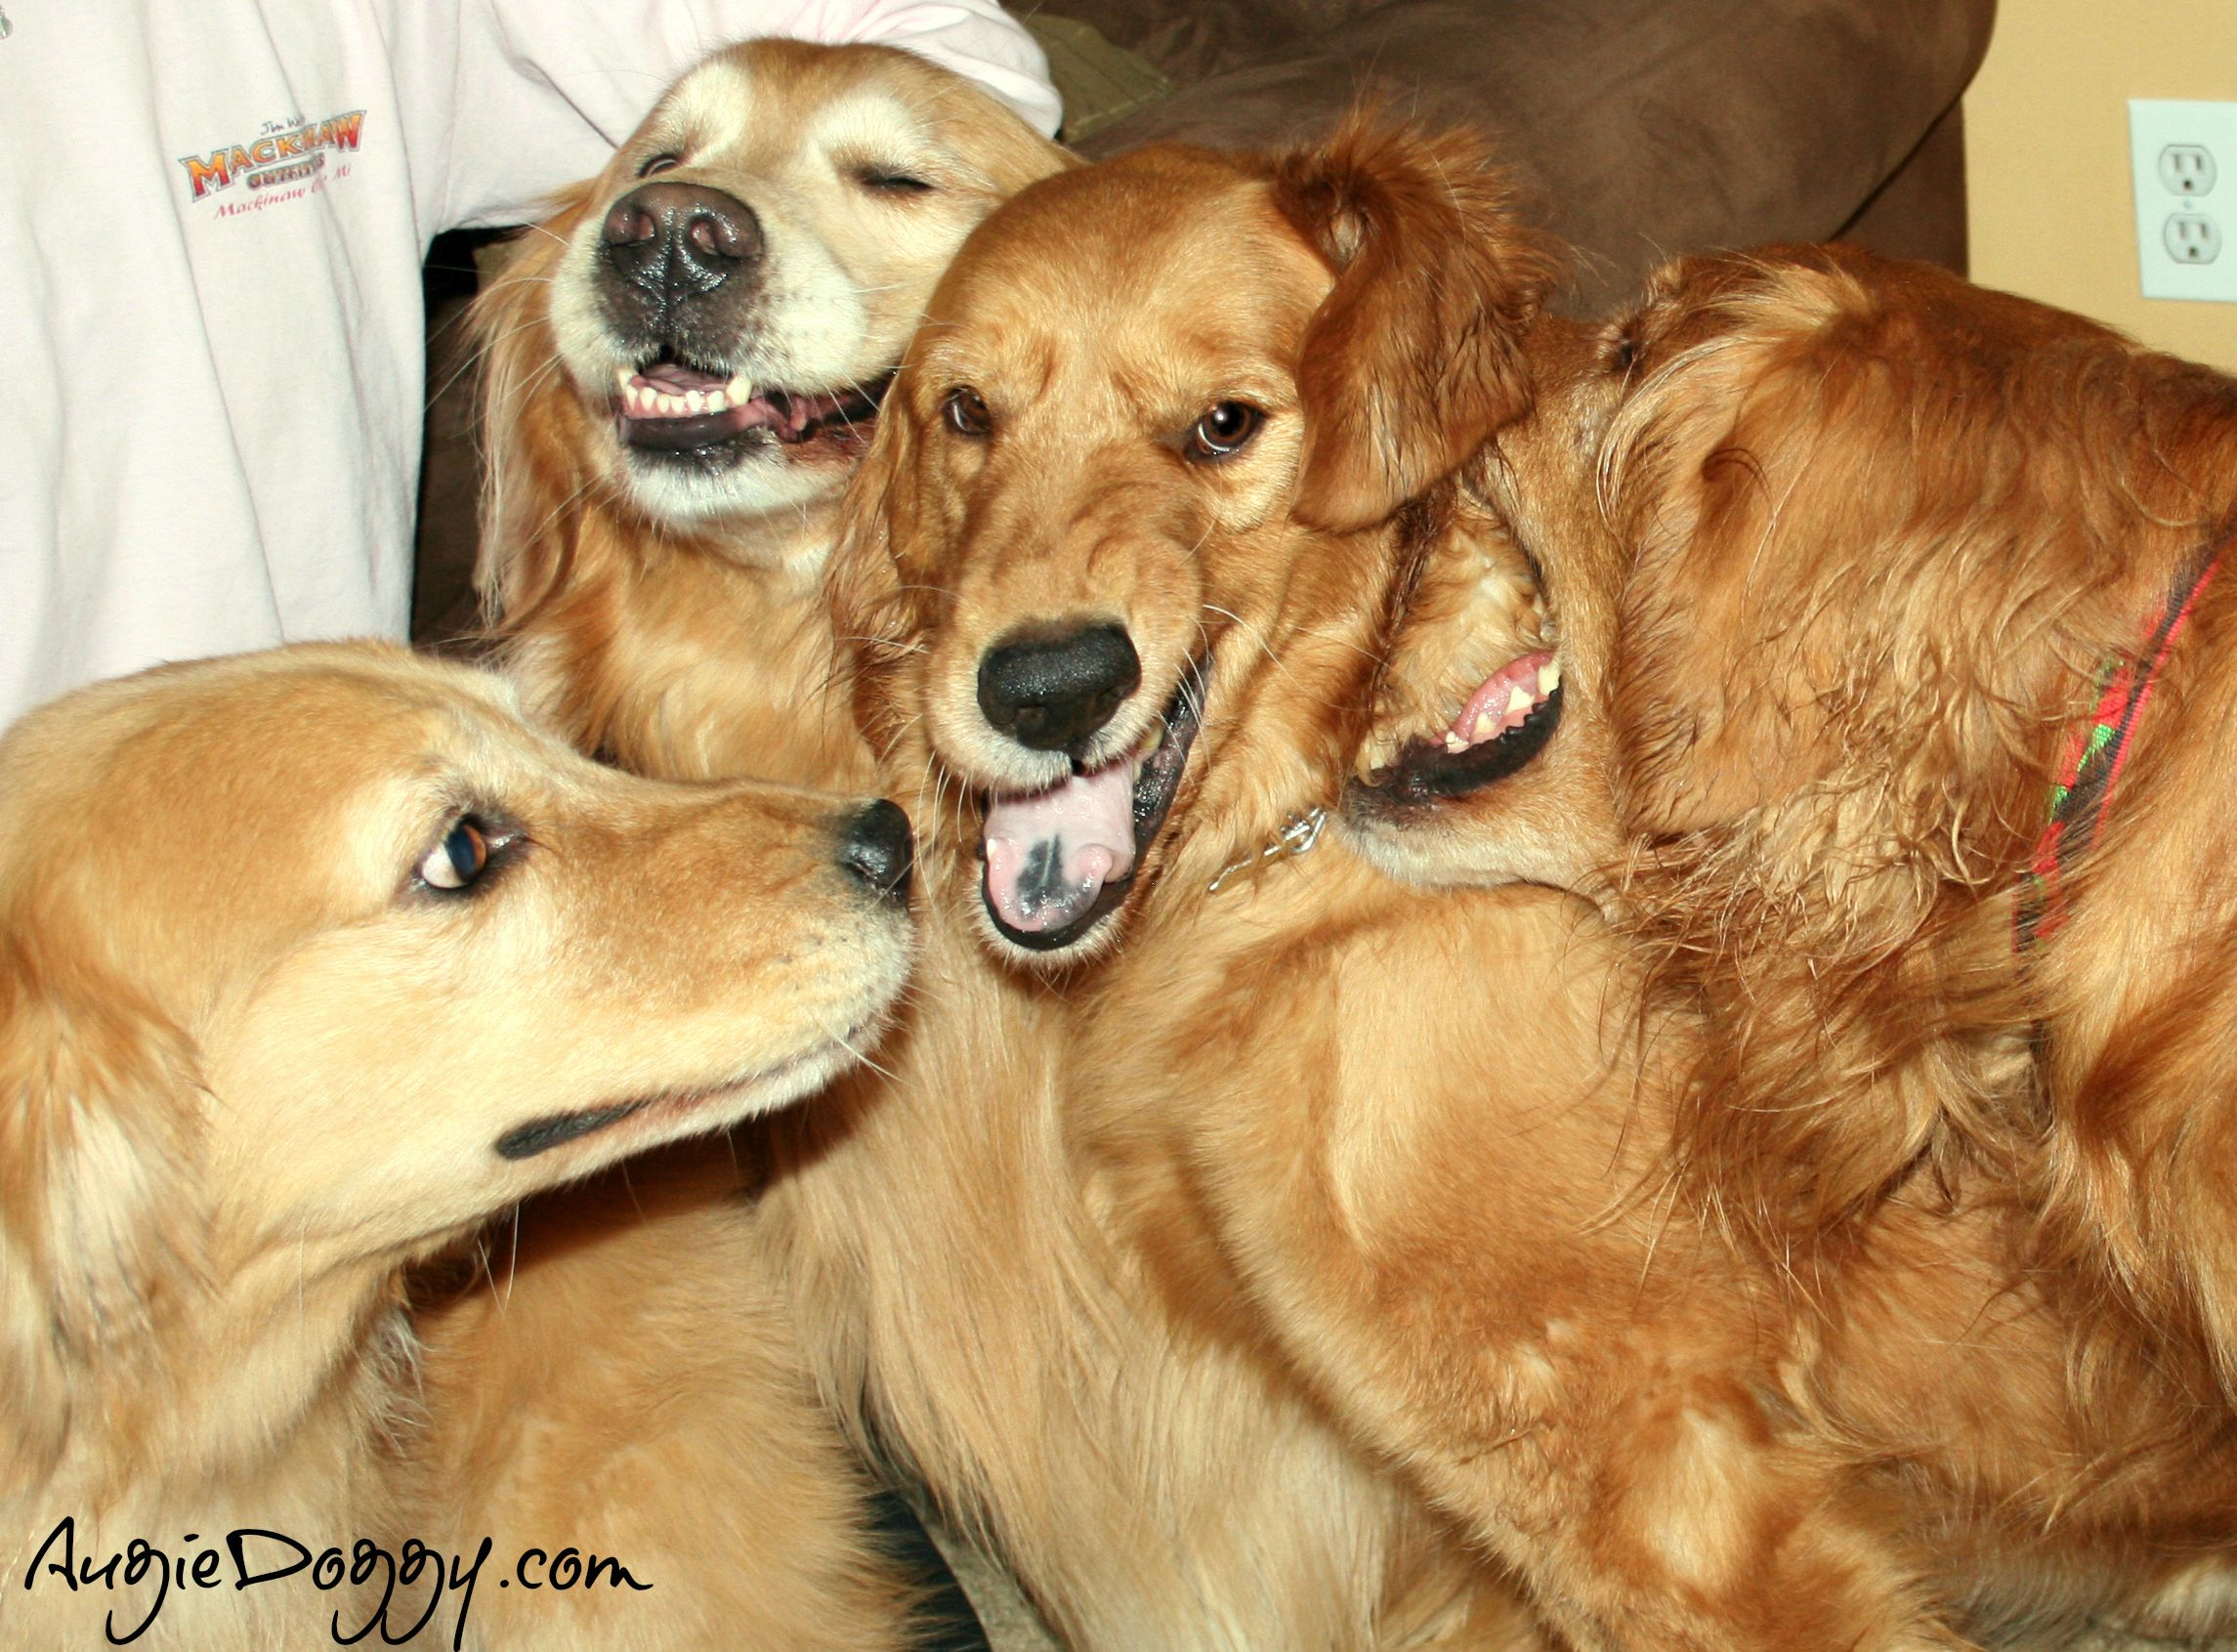 www.AugieDoggy.com -- Fun with friends!